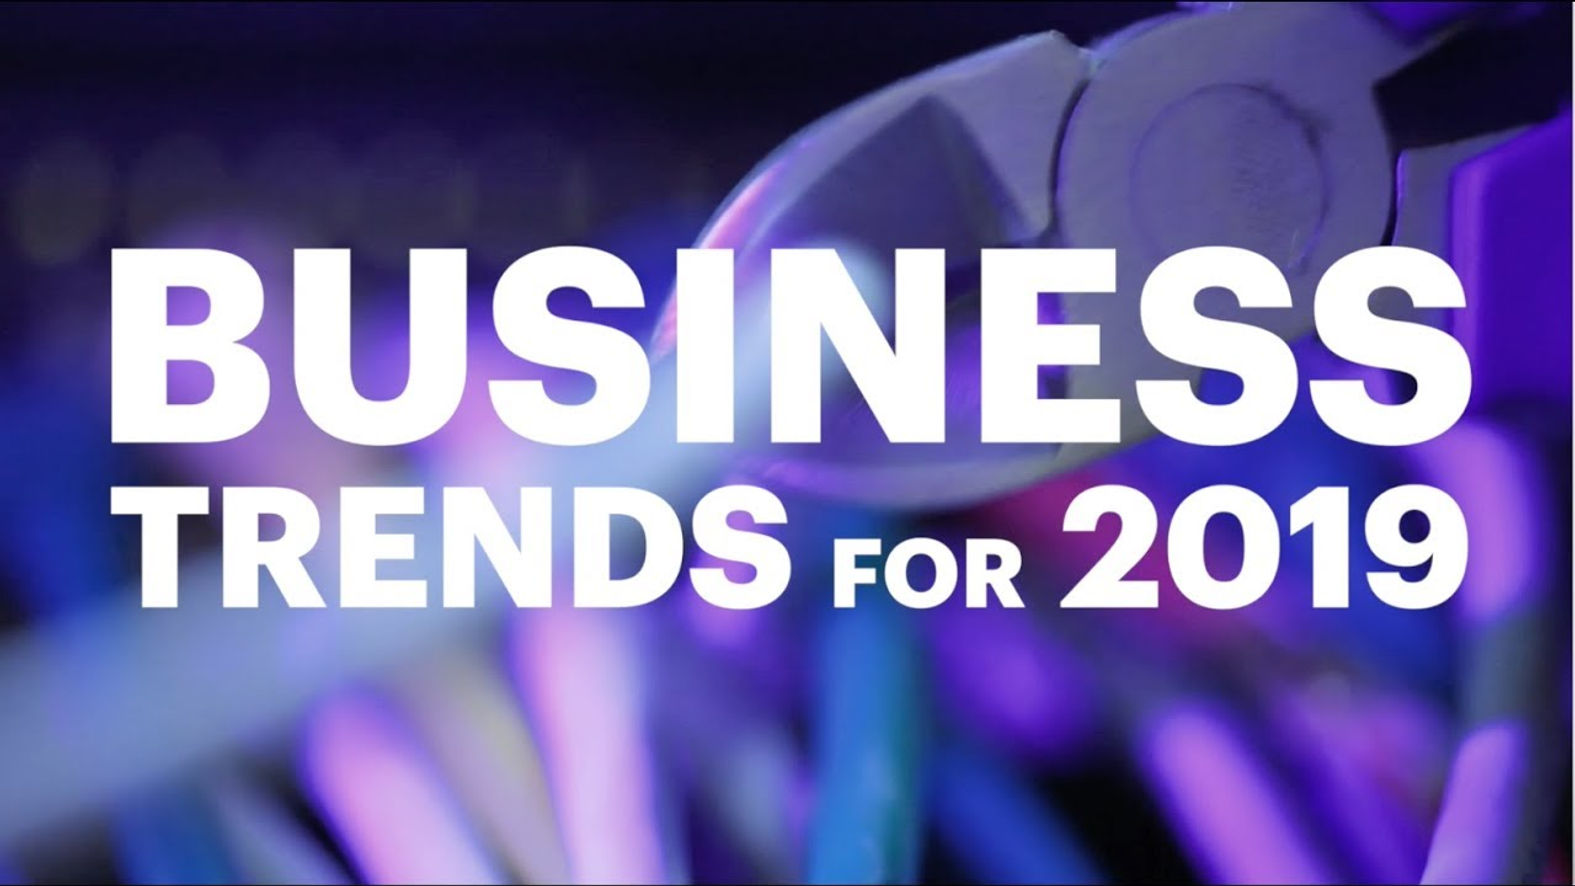 Business Trends for 2019